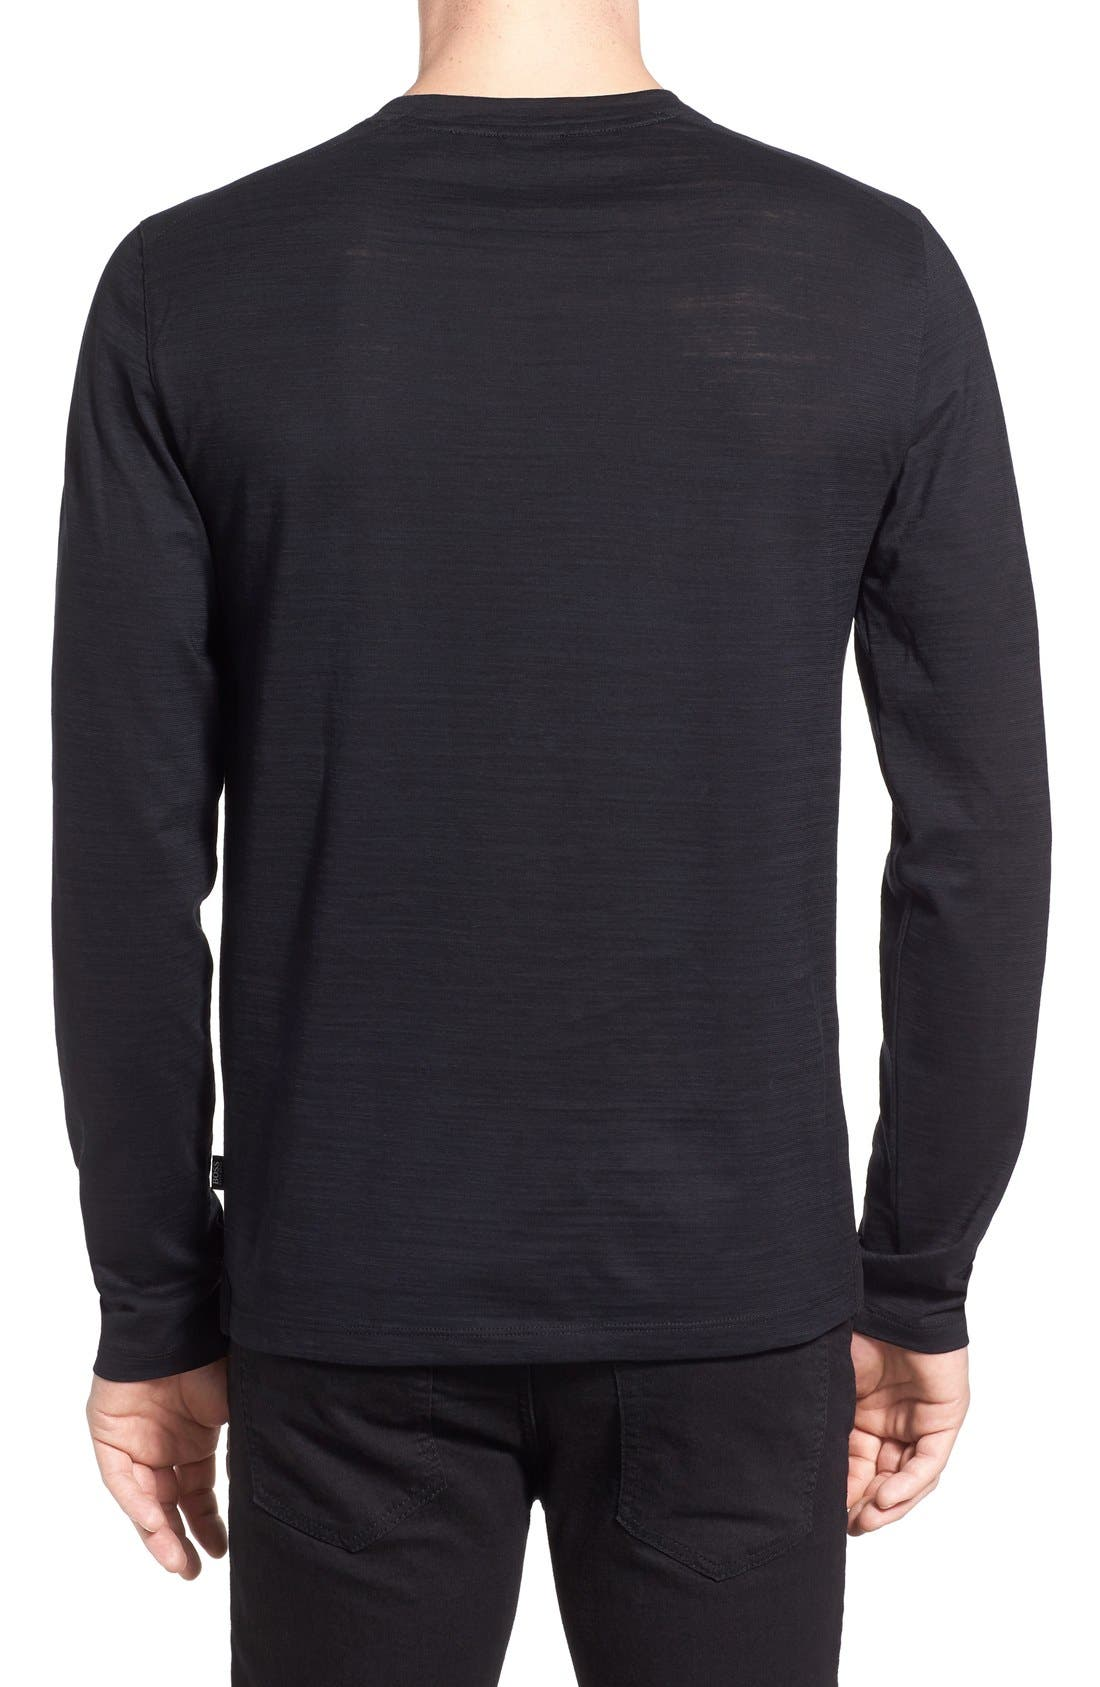 Alternate Image 2  - BOSS 'Tenison' Slim Fit Long Sleeve T-Shirt